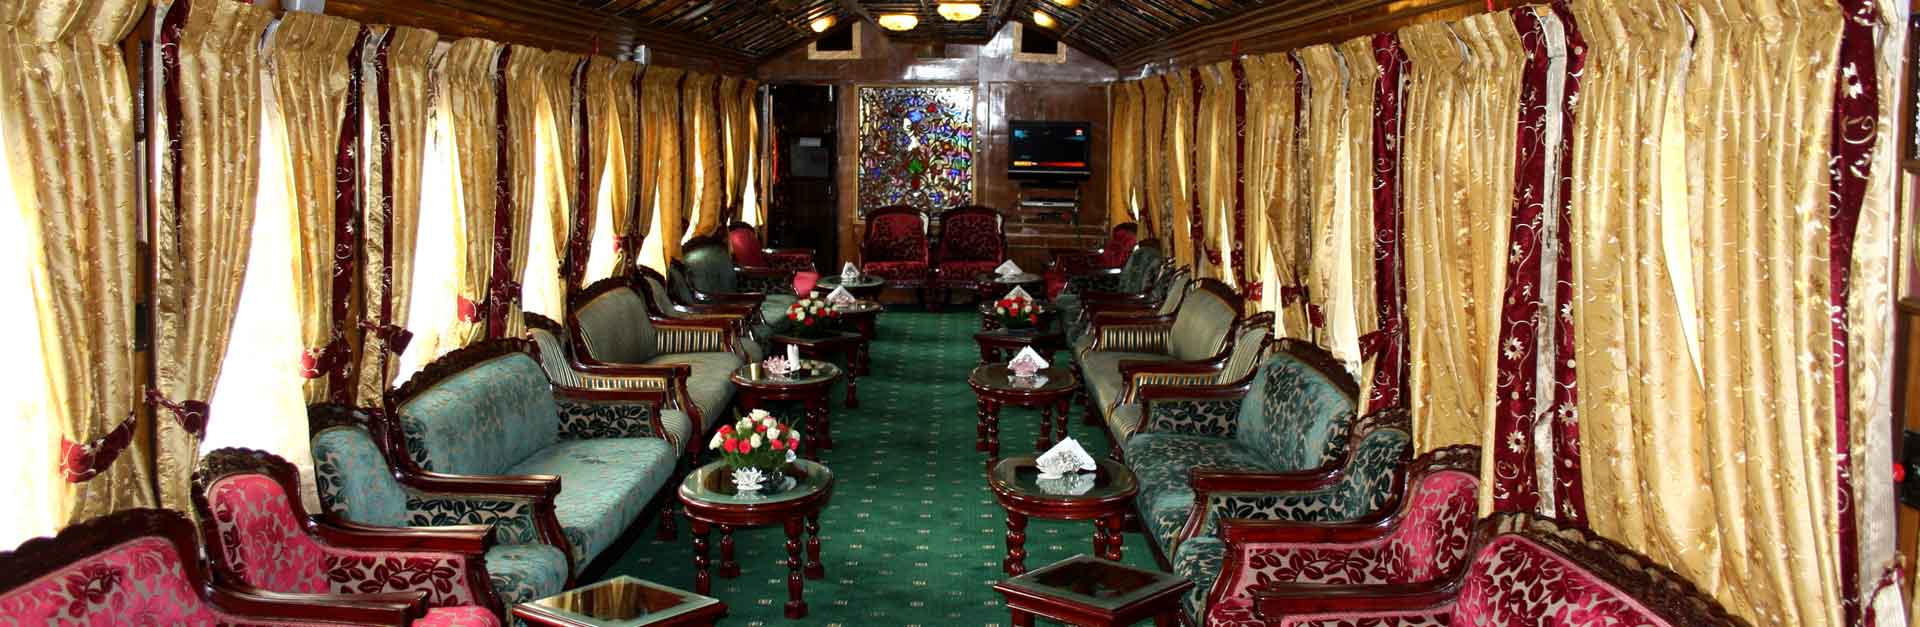 palace on wheels fare